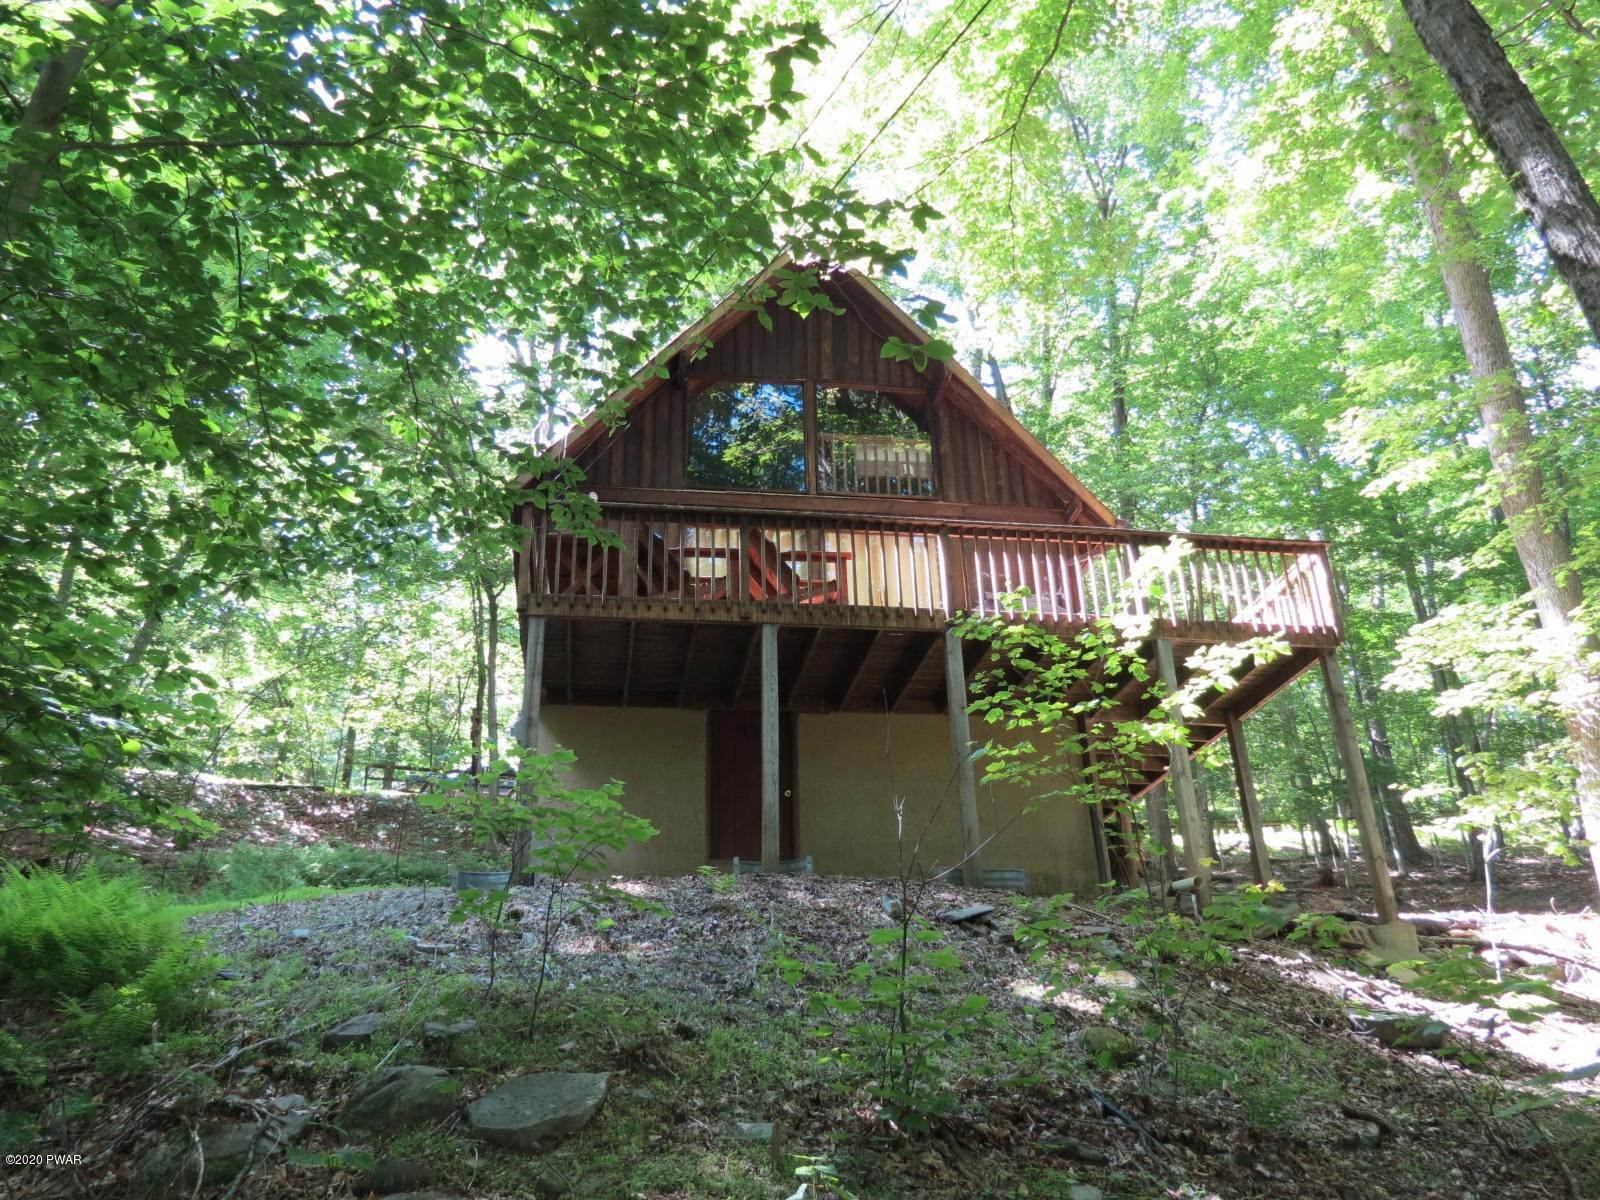 Property for Sale at 144 Ruffed Grouse Dr Greentown, Pennsylvania 18426 United States